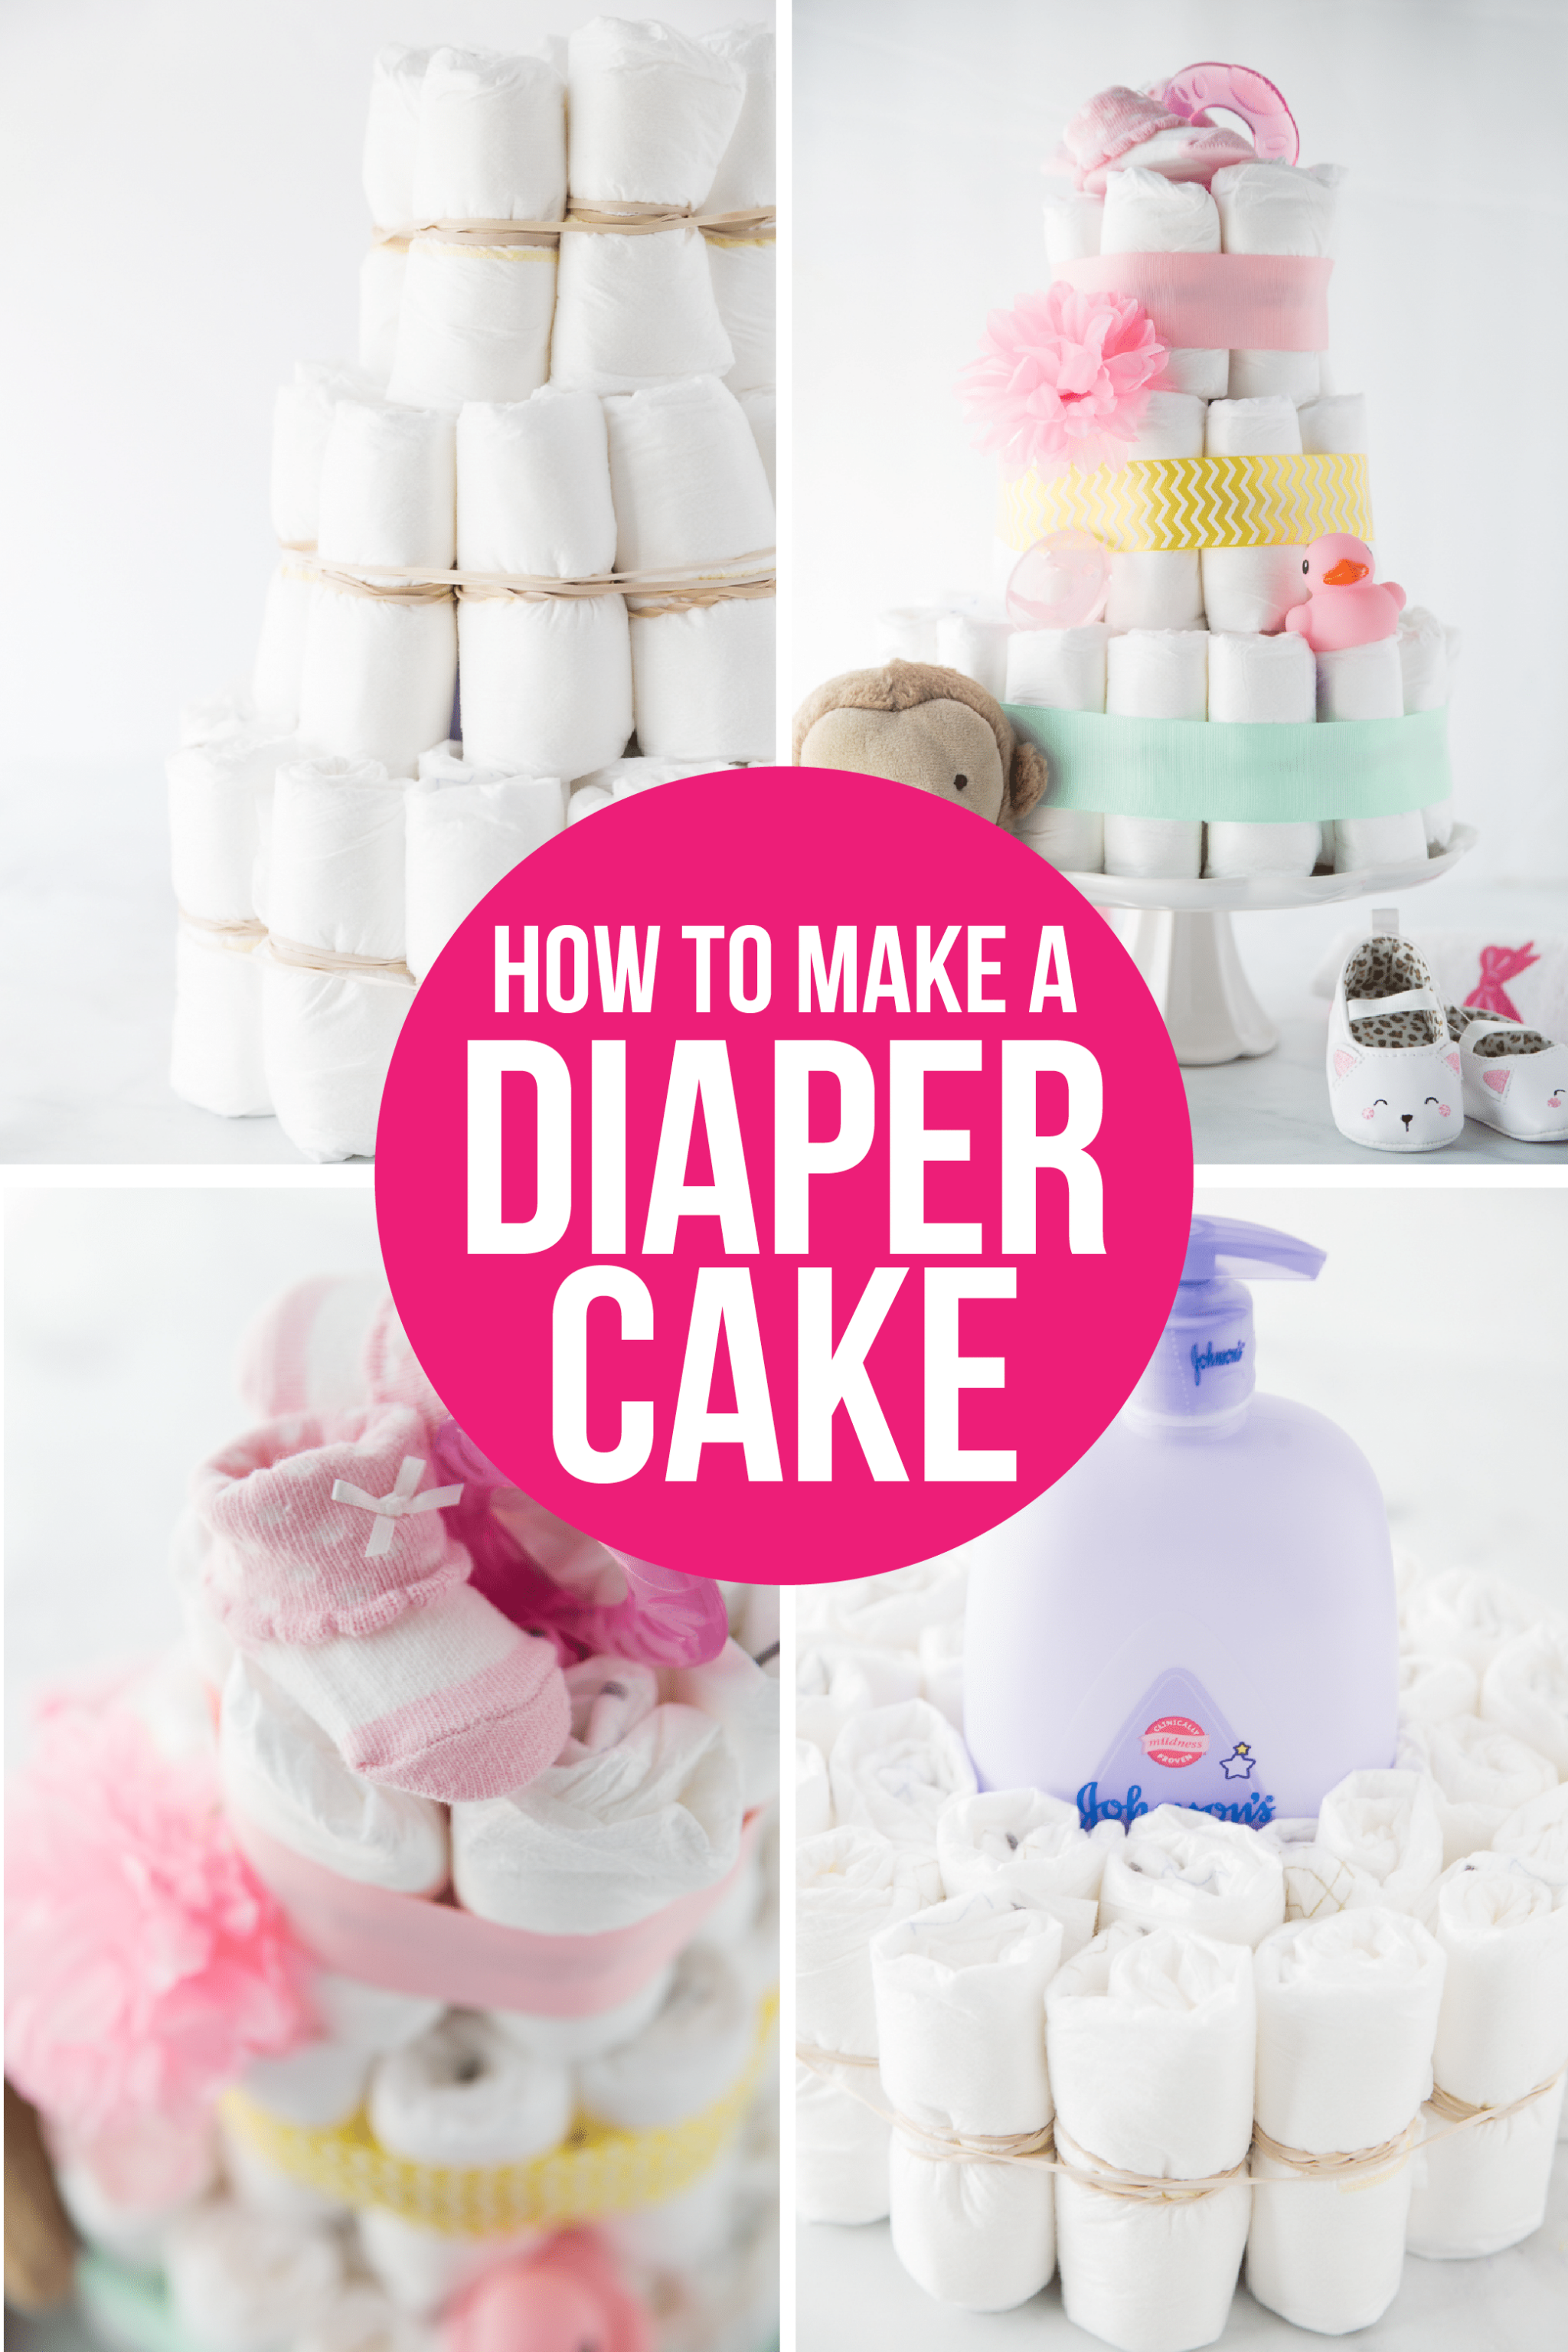 A Simple Diy Diaper Cake Tutorial Showing You In Photos And Video How To Make